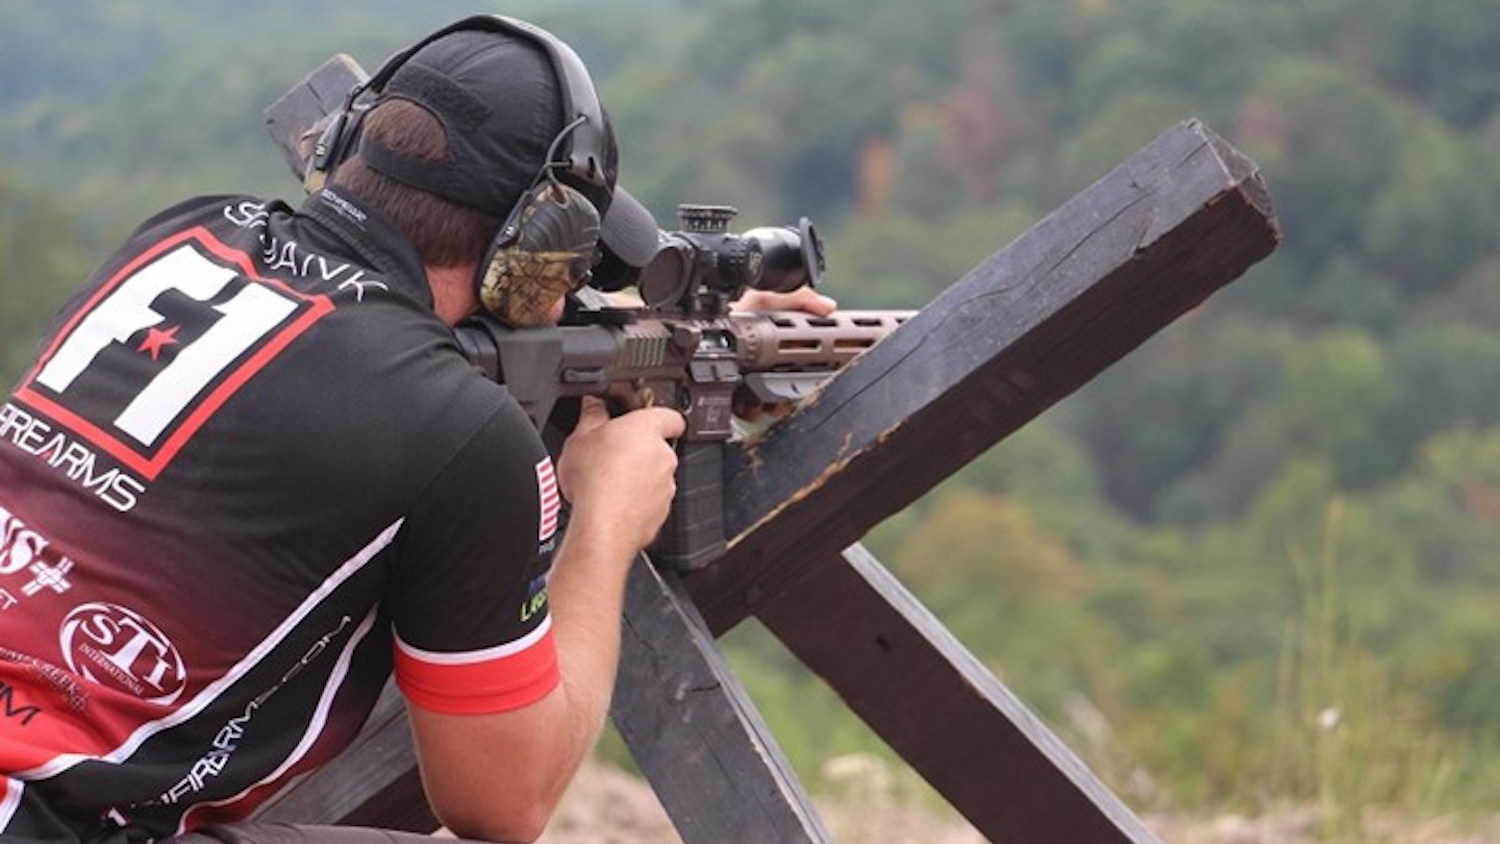 Do You Have What It Takes To Become The NRA World Shooting Champion?